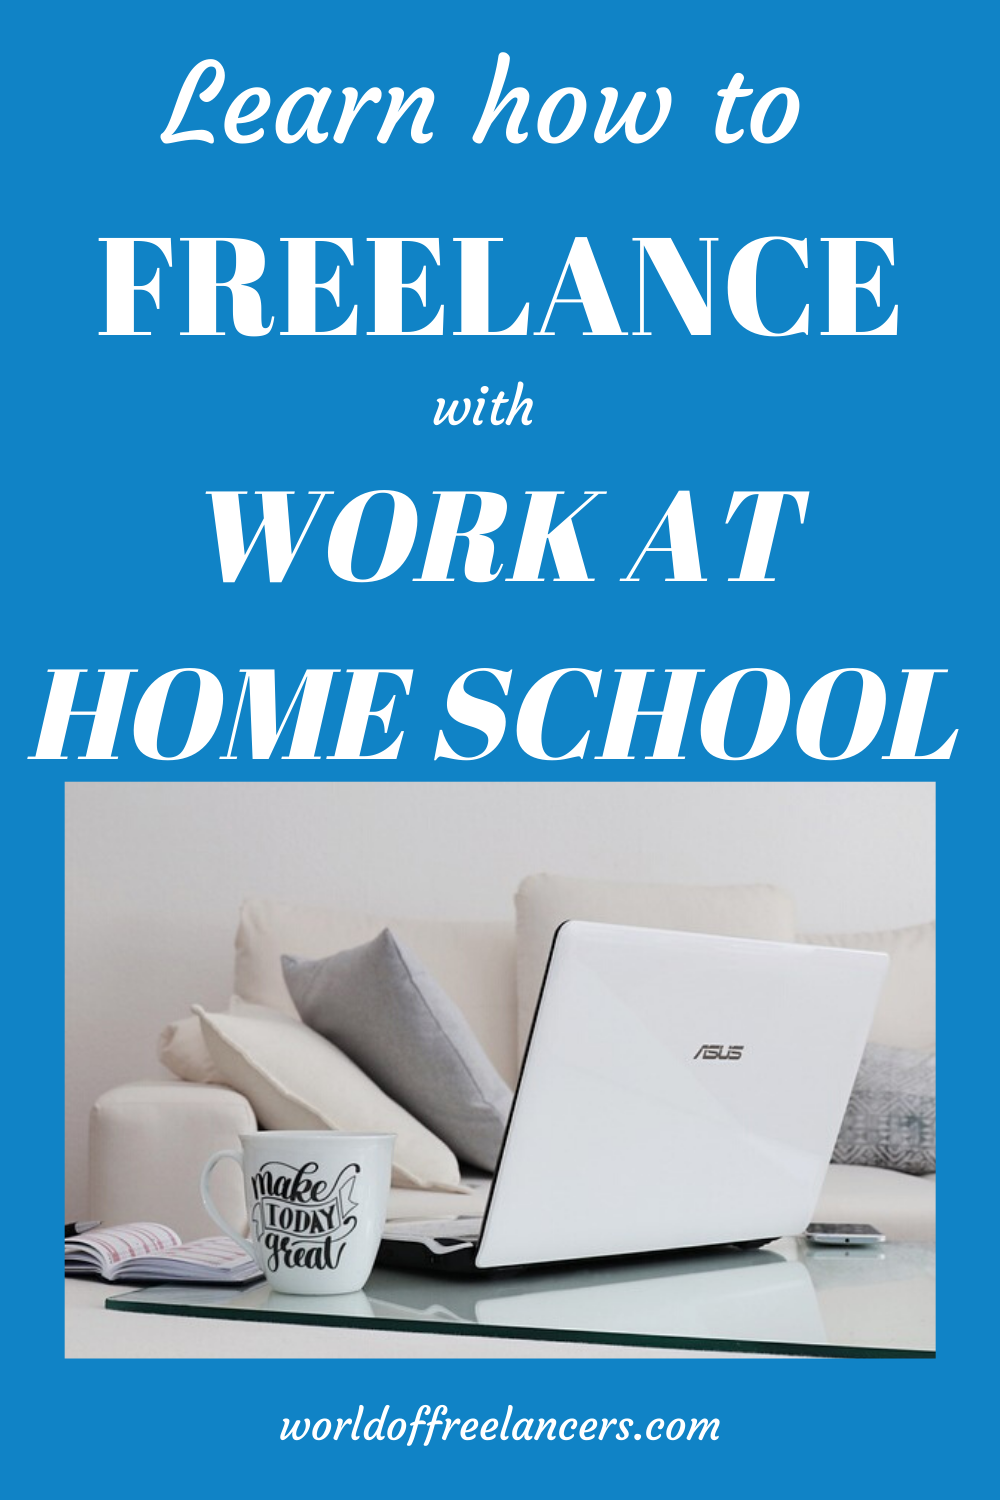 Learn How to Freelance with Work at Home School